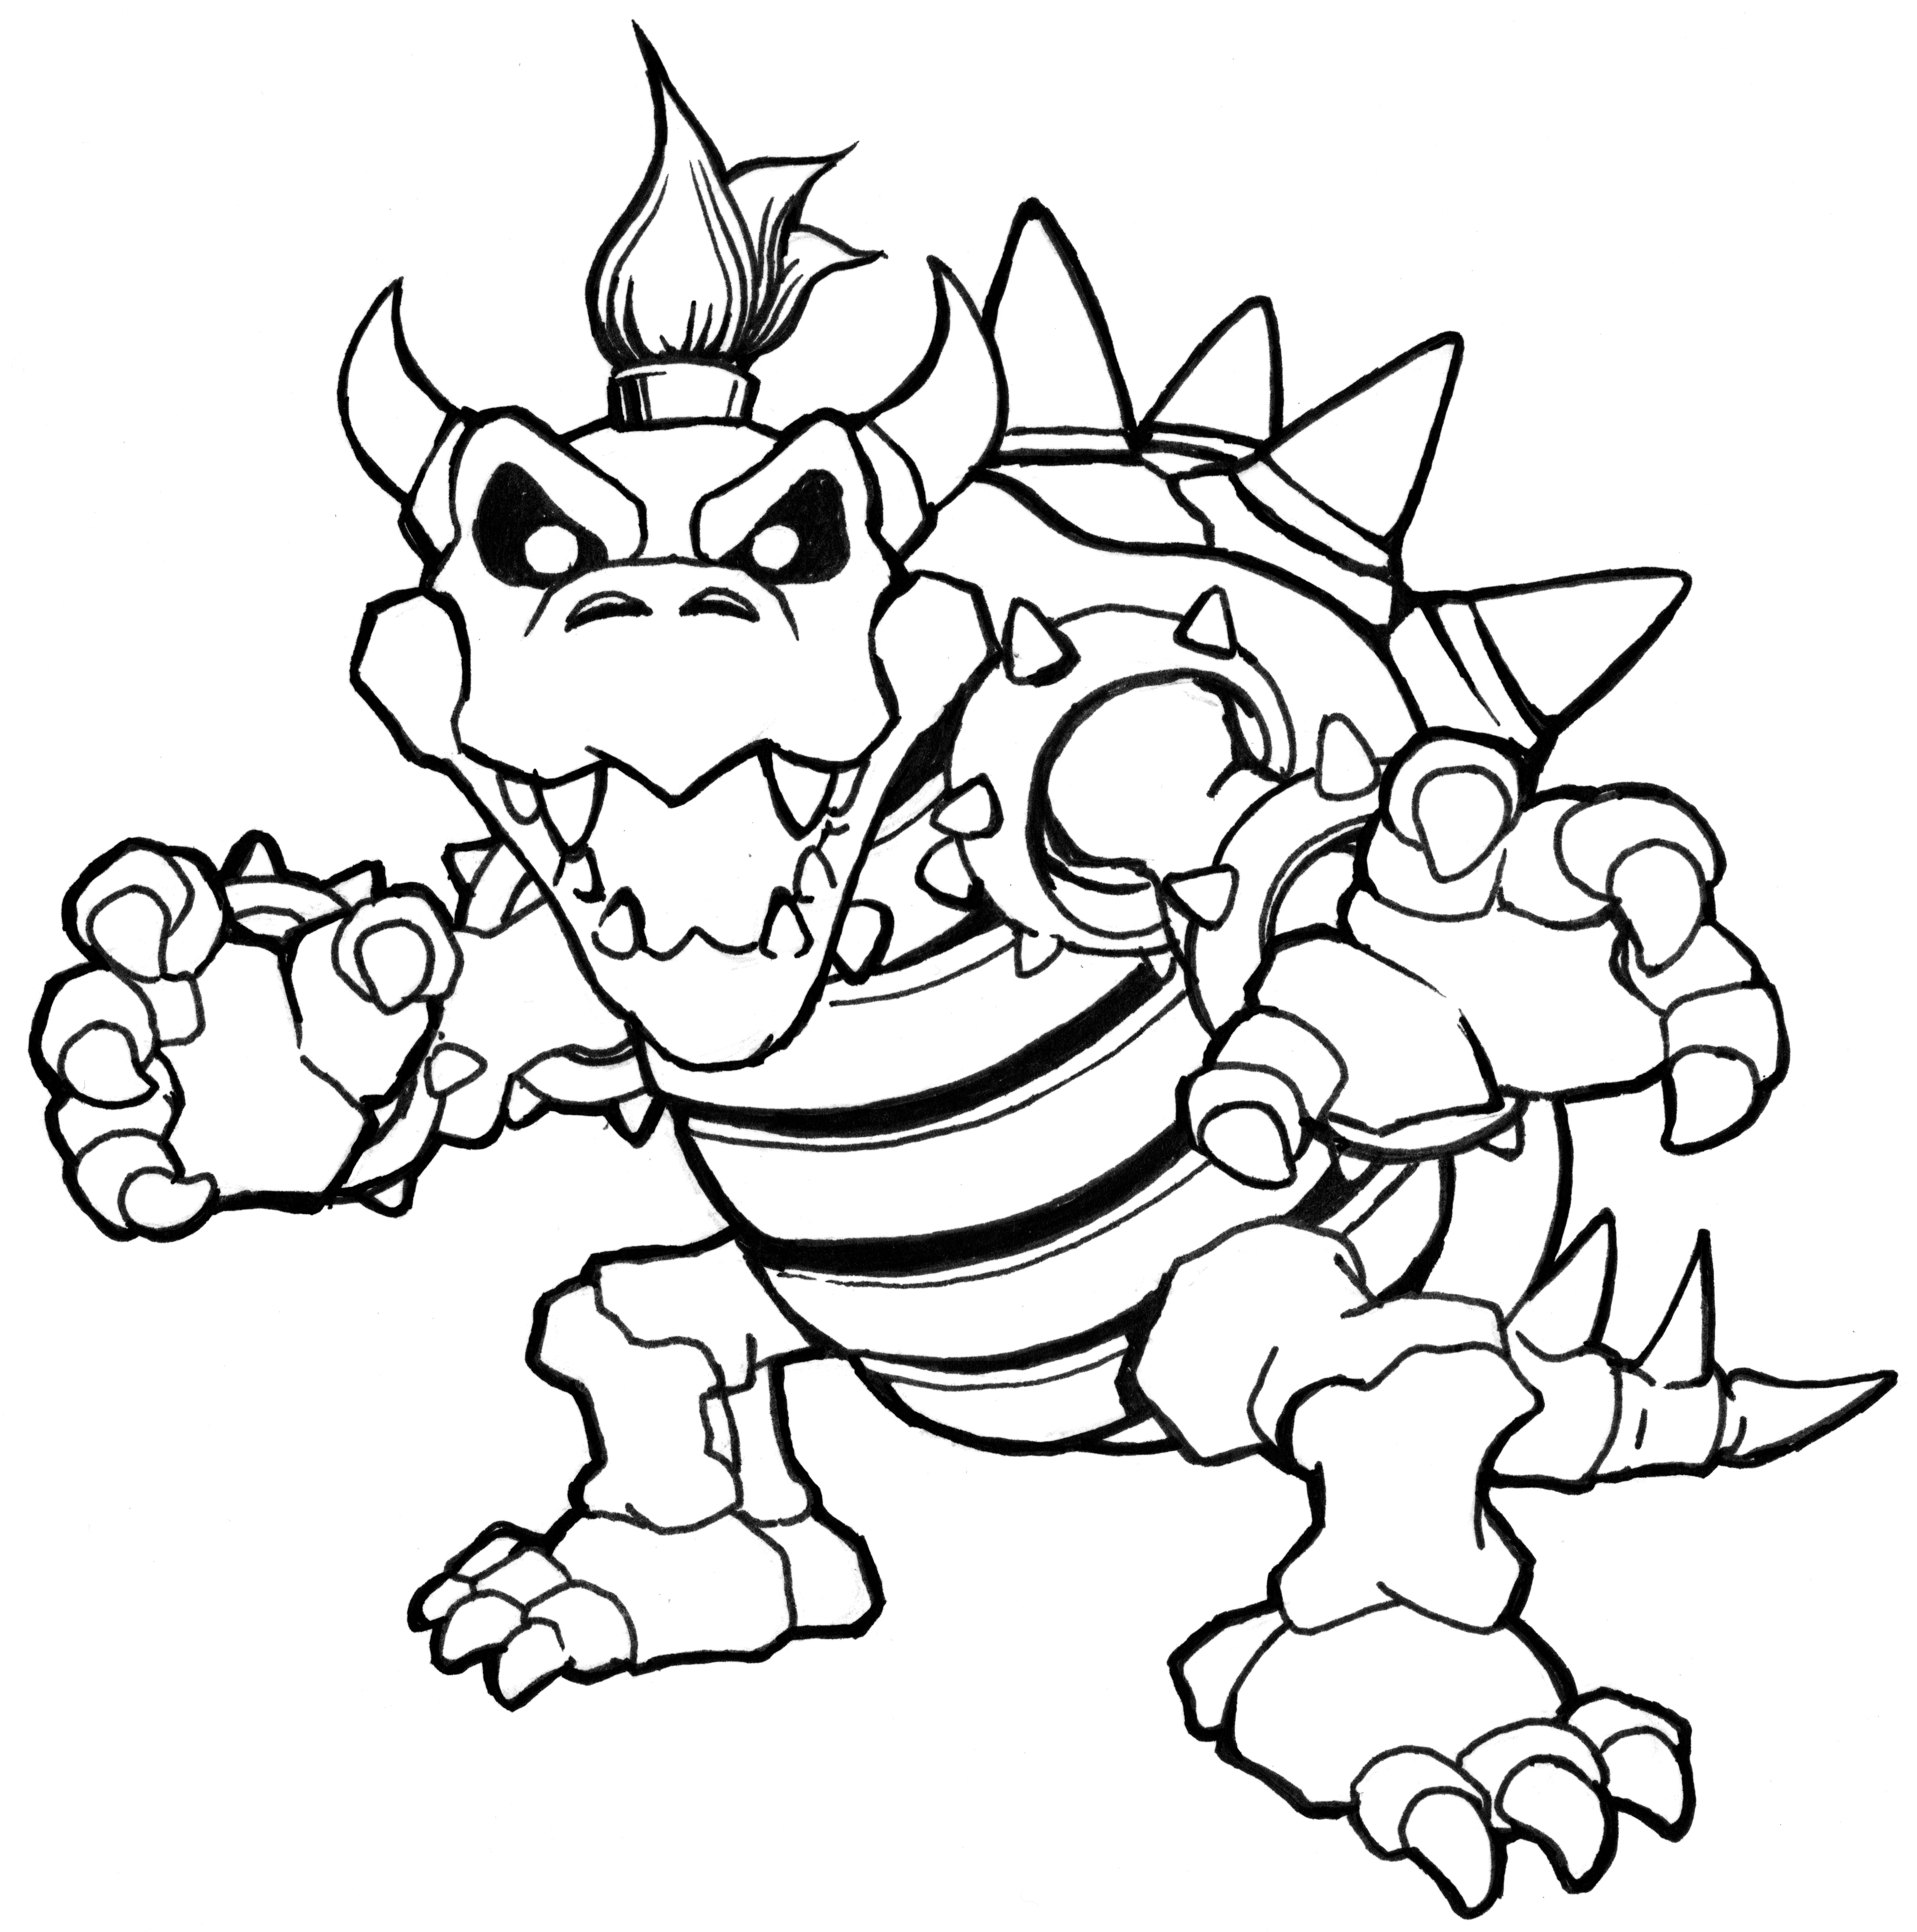 Baby Mario Coloring Pages To Print Free Printable Baby Elephant